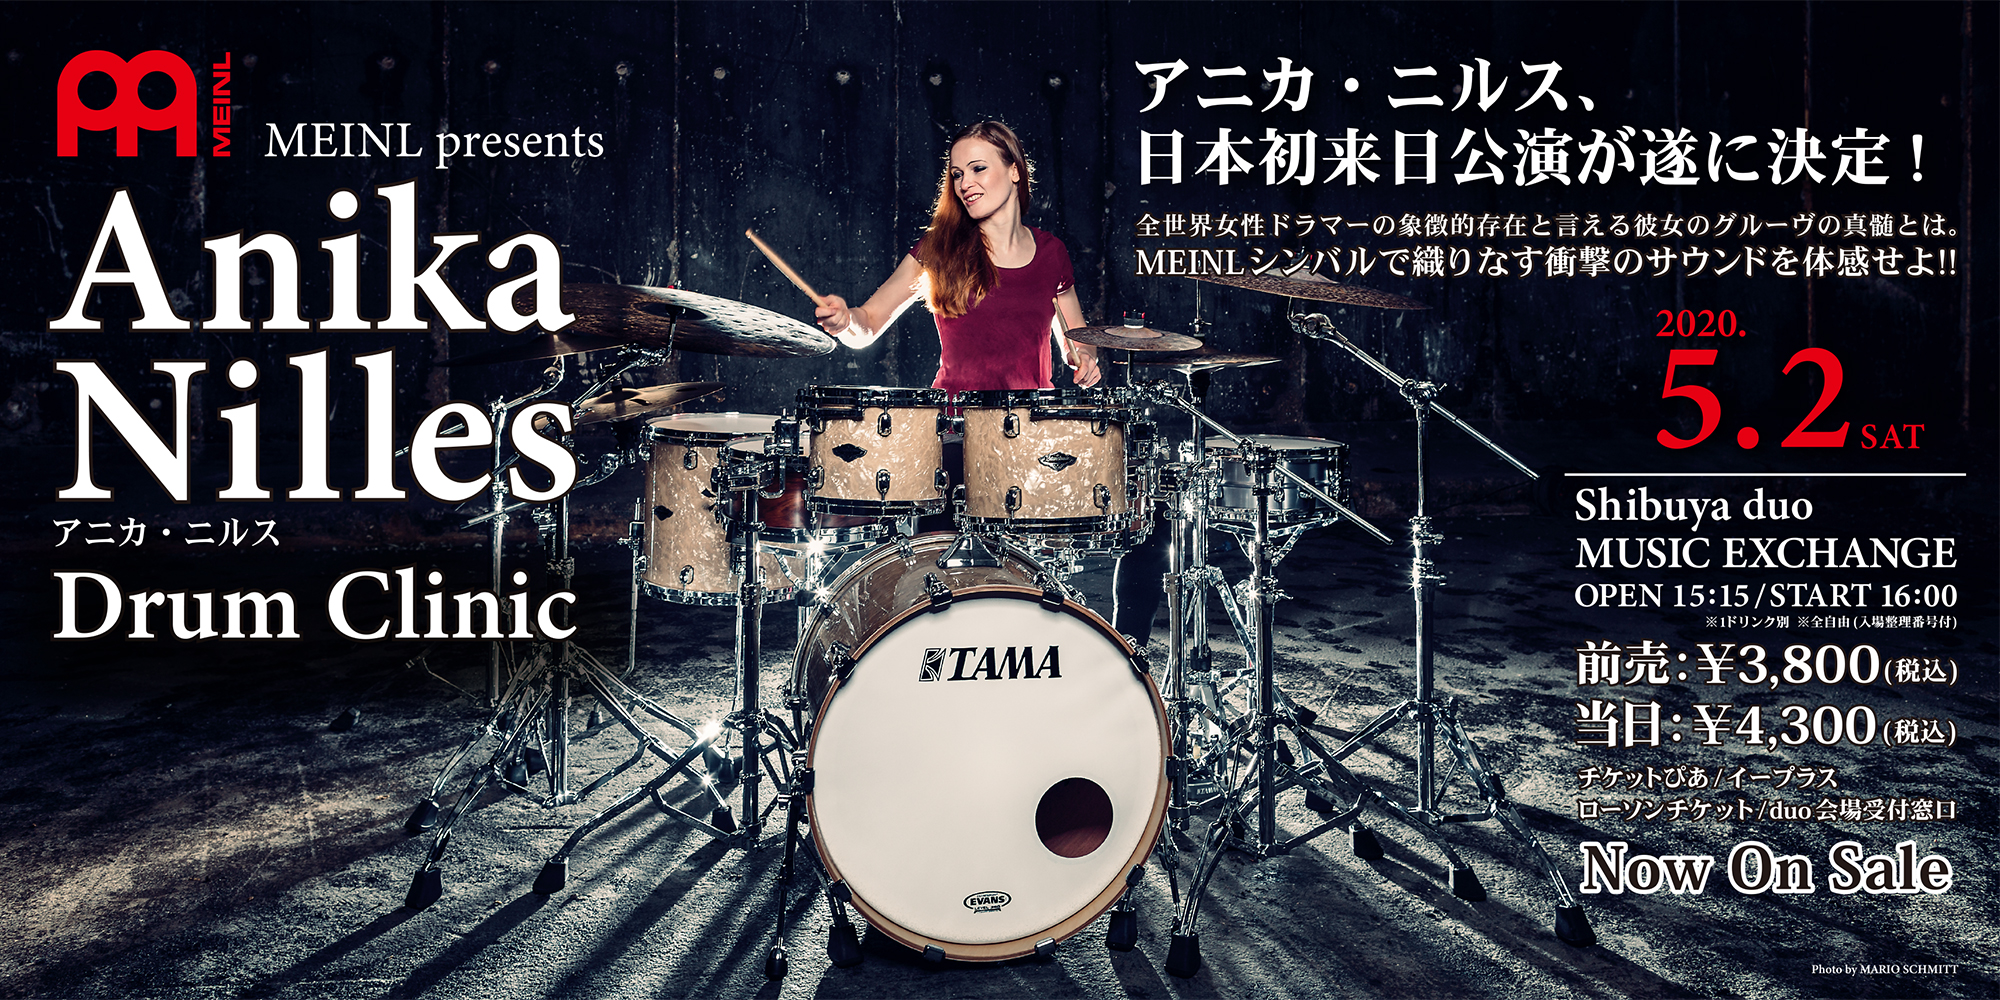 MEINL presents Anika Nilles Drum Clinic